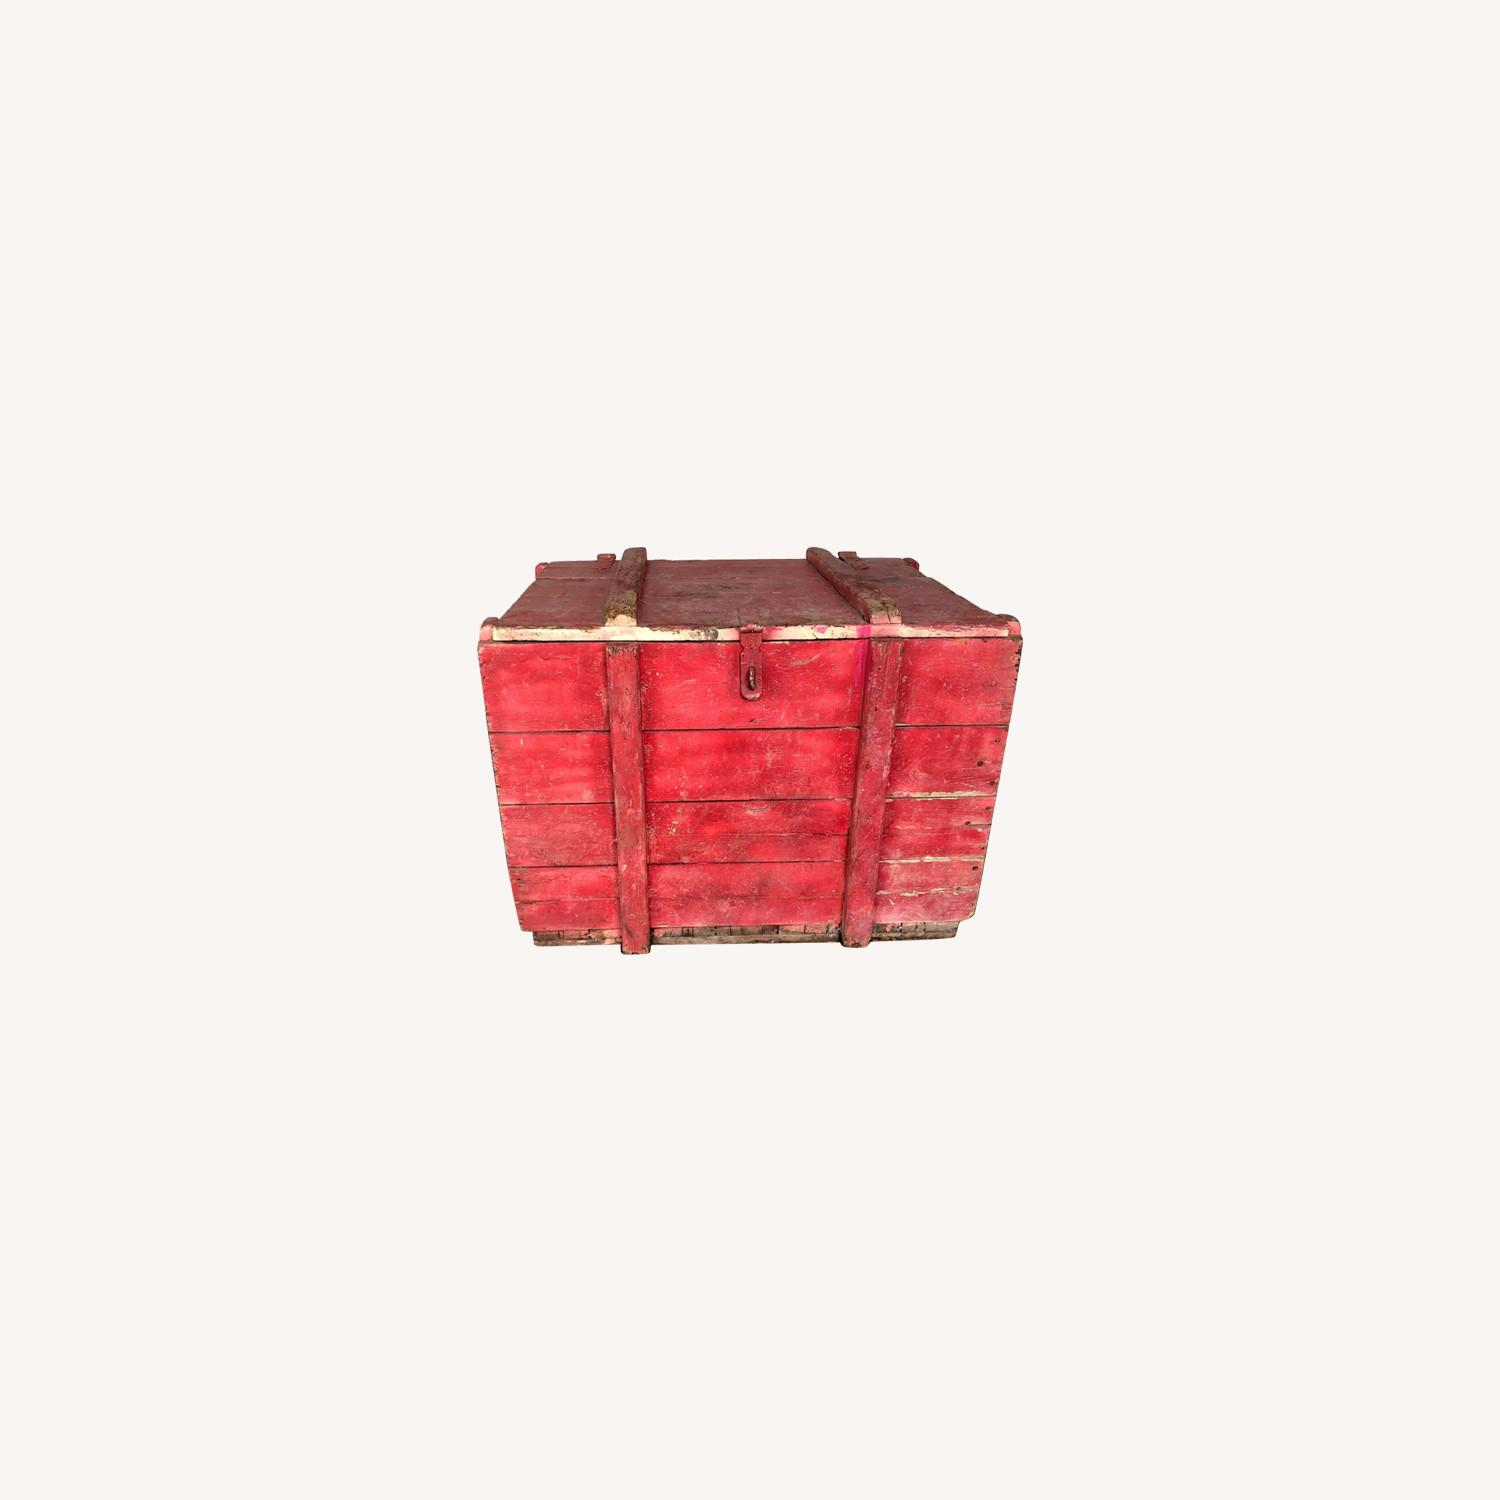 Hand-made Rustic Wooden Storage Box - image-0